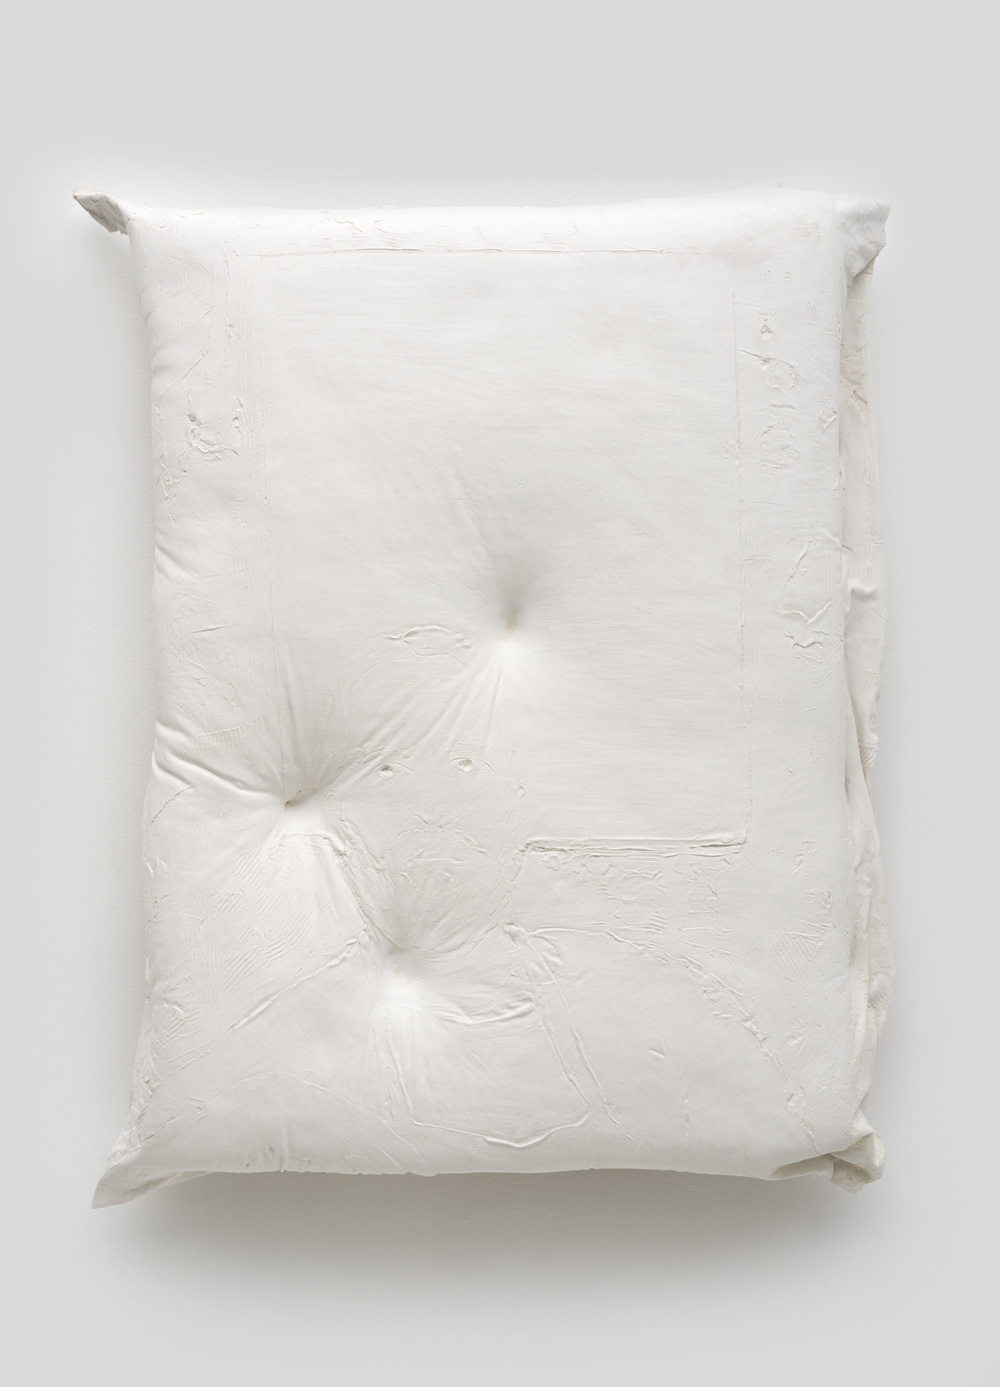 Untitled , 2014 Gypsum cement, fiberglass cloth, wood 34 x 30 x 8 inches